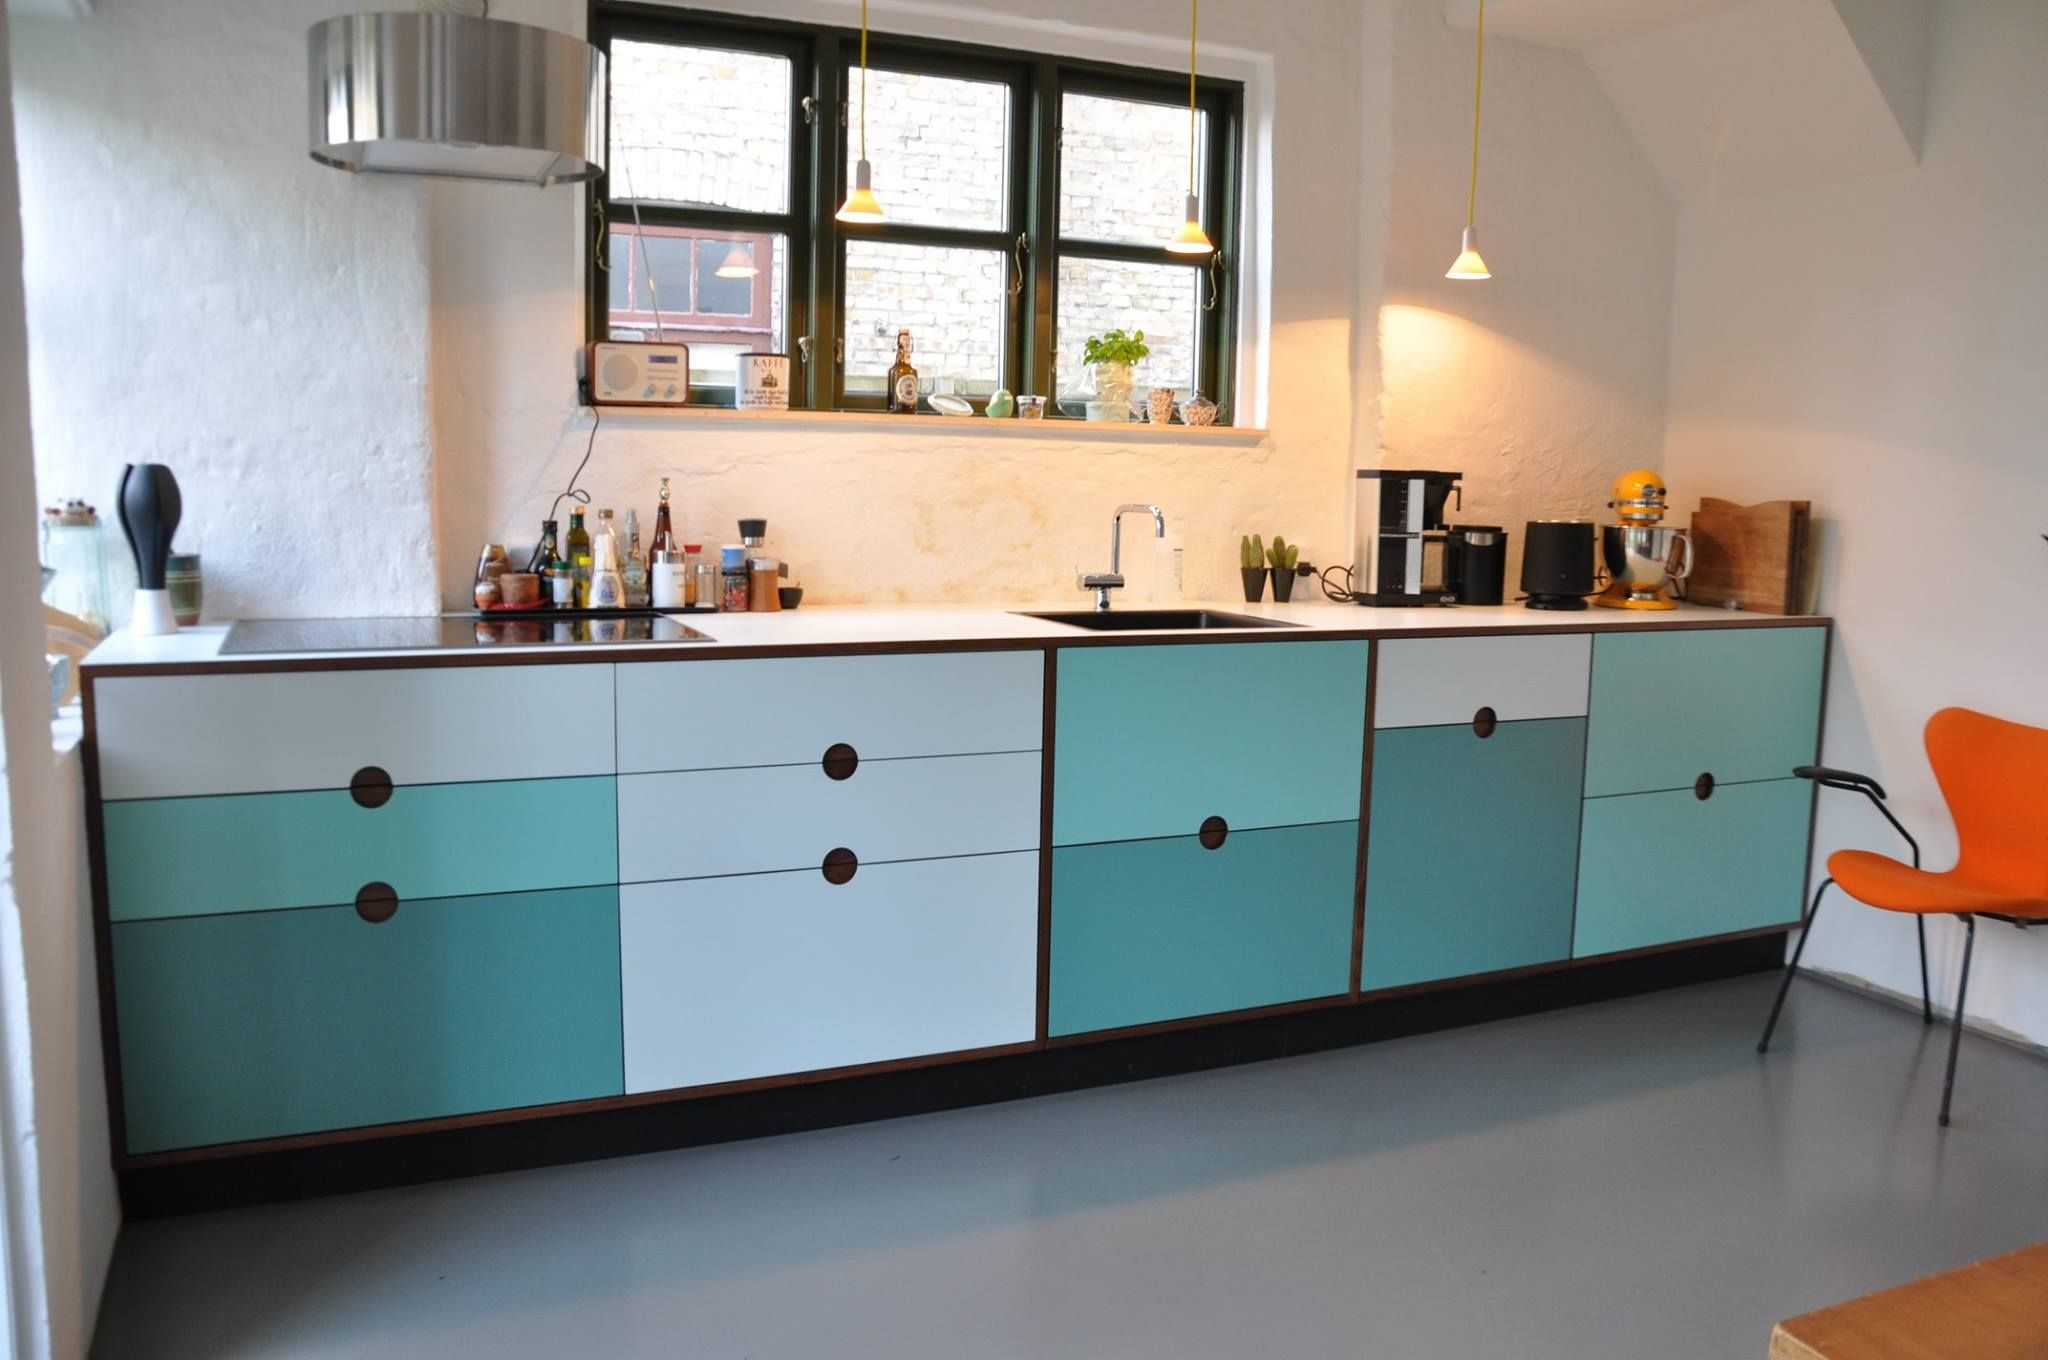 www.Kjeldtoft.com Super cool kitchen | Tiny House | Pinterest ...